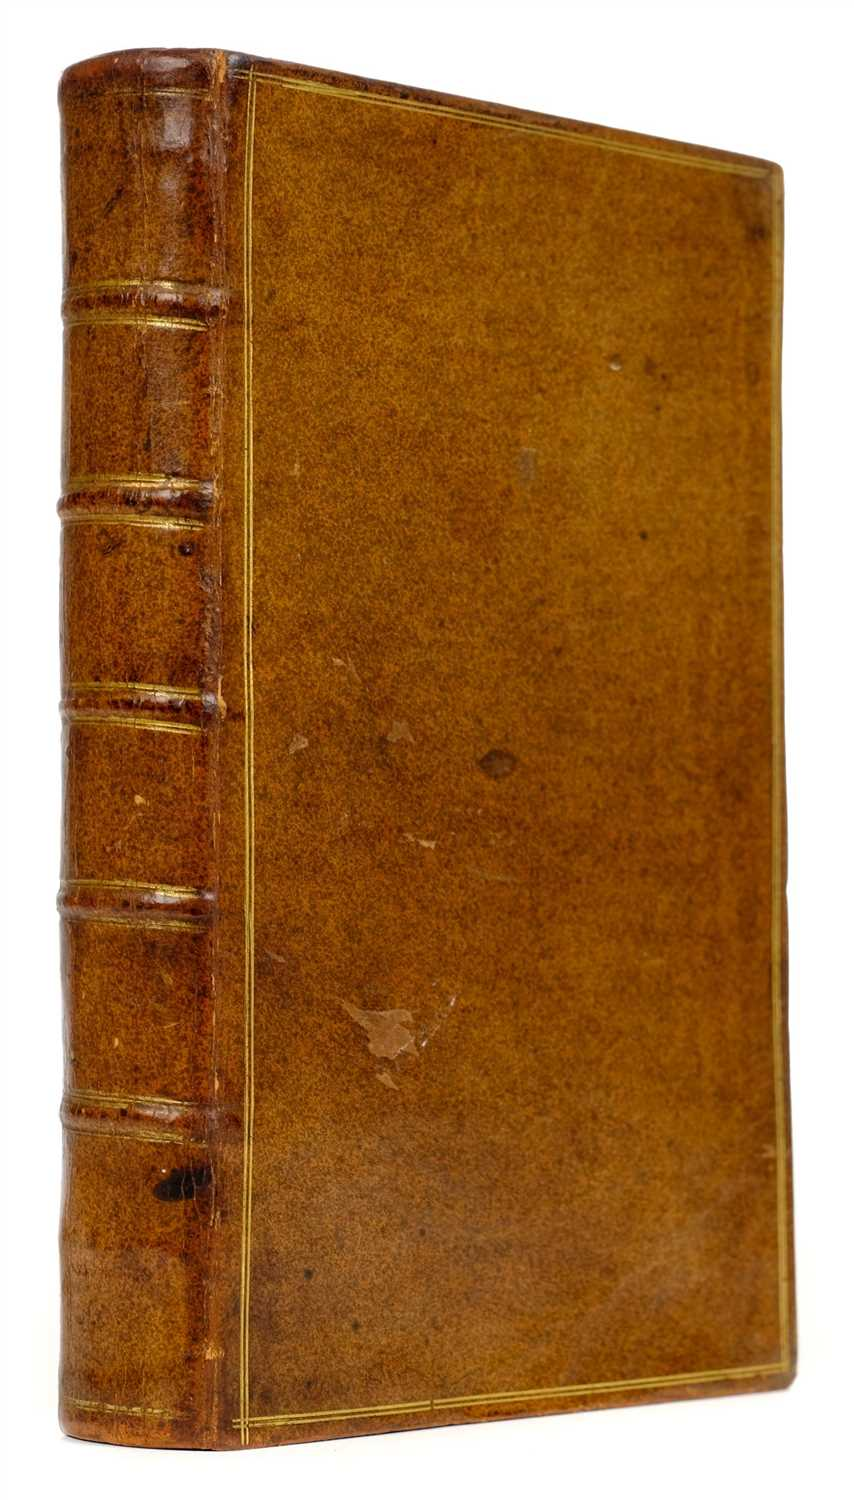 Lot 240 - Gelleroy (William). The London Cook, or the whole Art of Cookery made easy and familiar, 1762